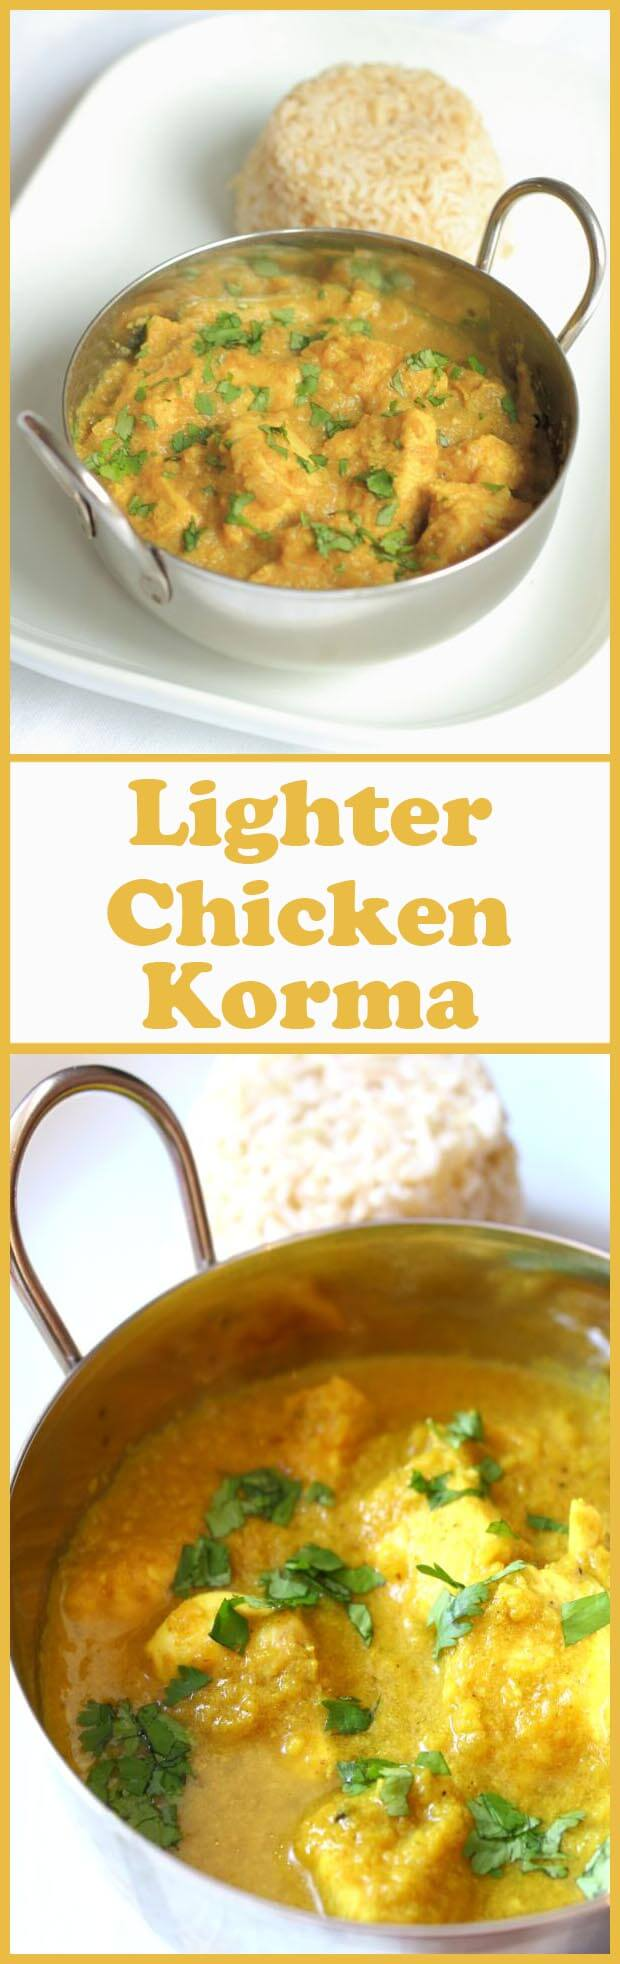 This fantastic lighter chicken korma recipe is perfect for those of us watching our waistlines! At just over 300 calories per portion, it doesn't contain any cream, but it does contain the same delicious creamy taste!